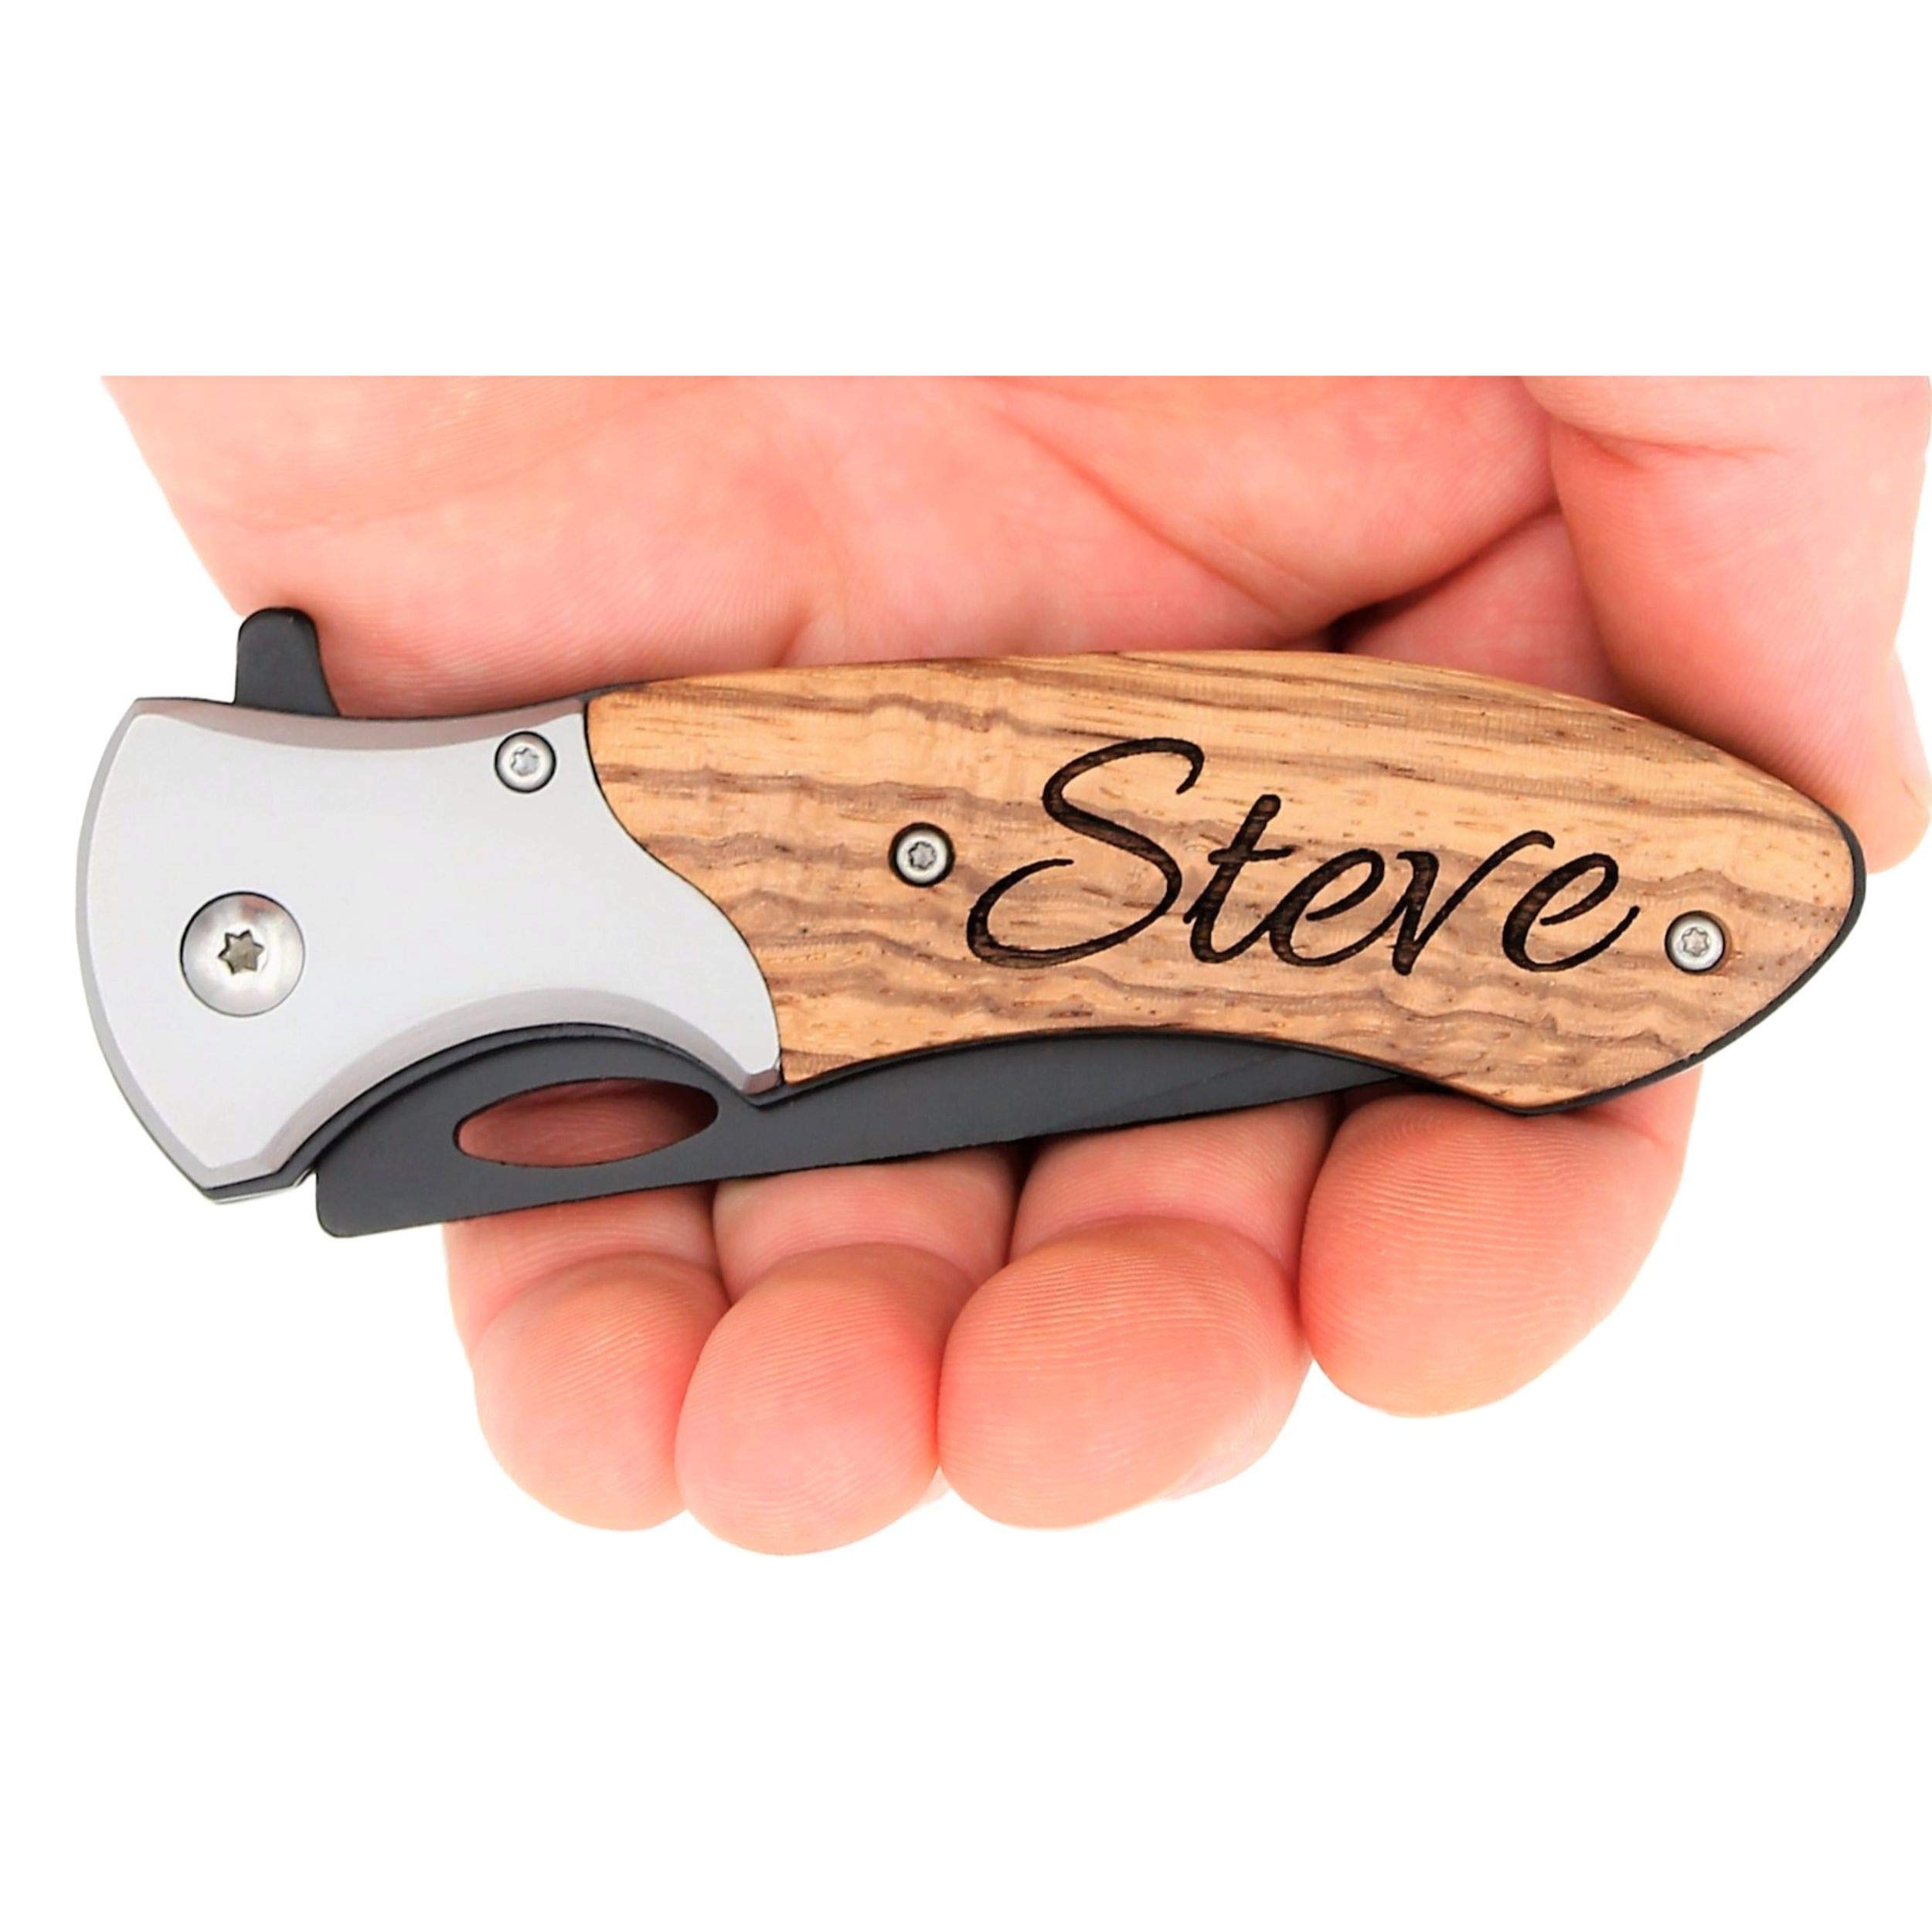 Tac Force TF876 Personalized Laser Engraved Tactical Pocket Knife